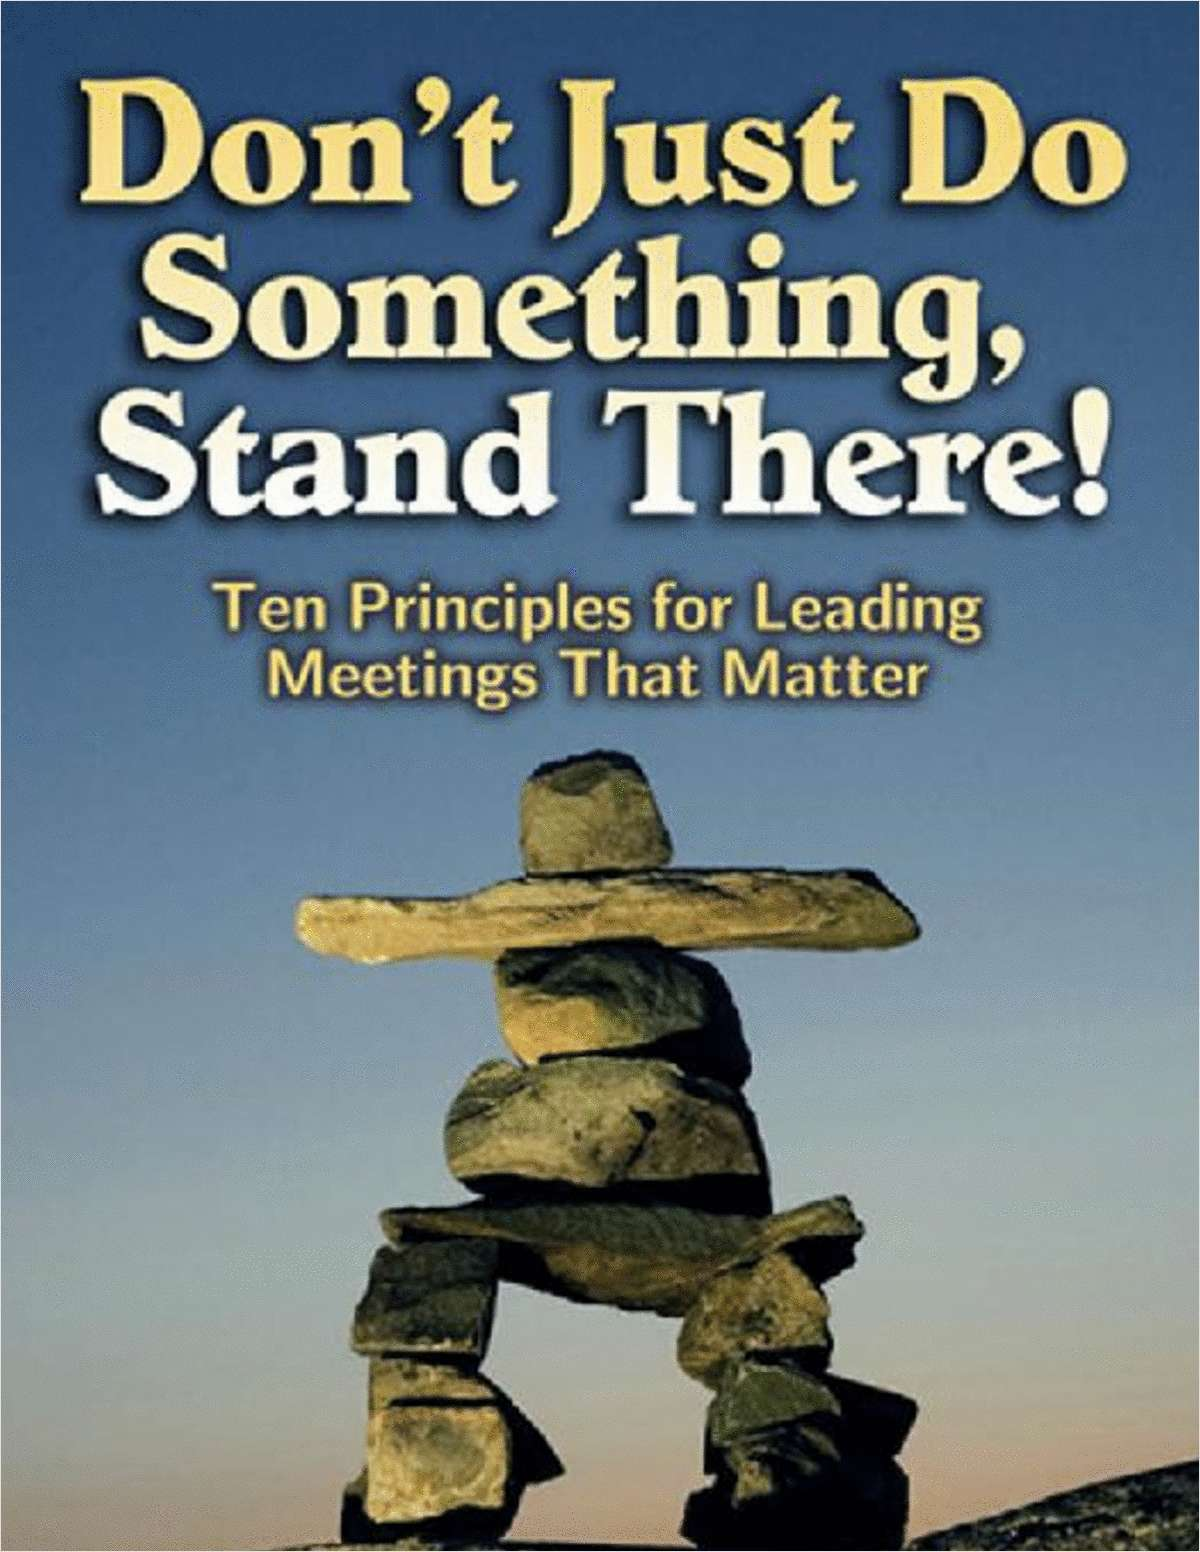 Don't Just Do Something, Stand There! -- An 85 Page Excerpt